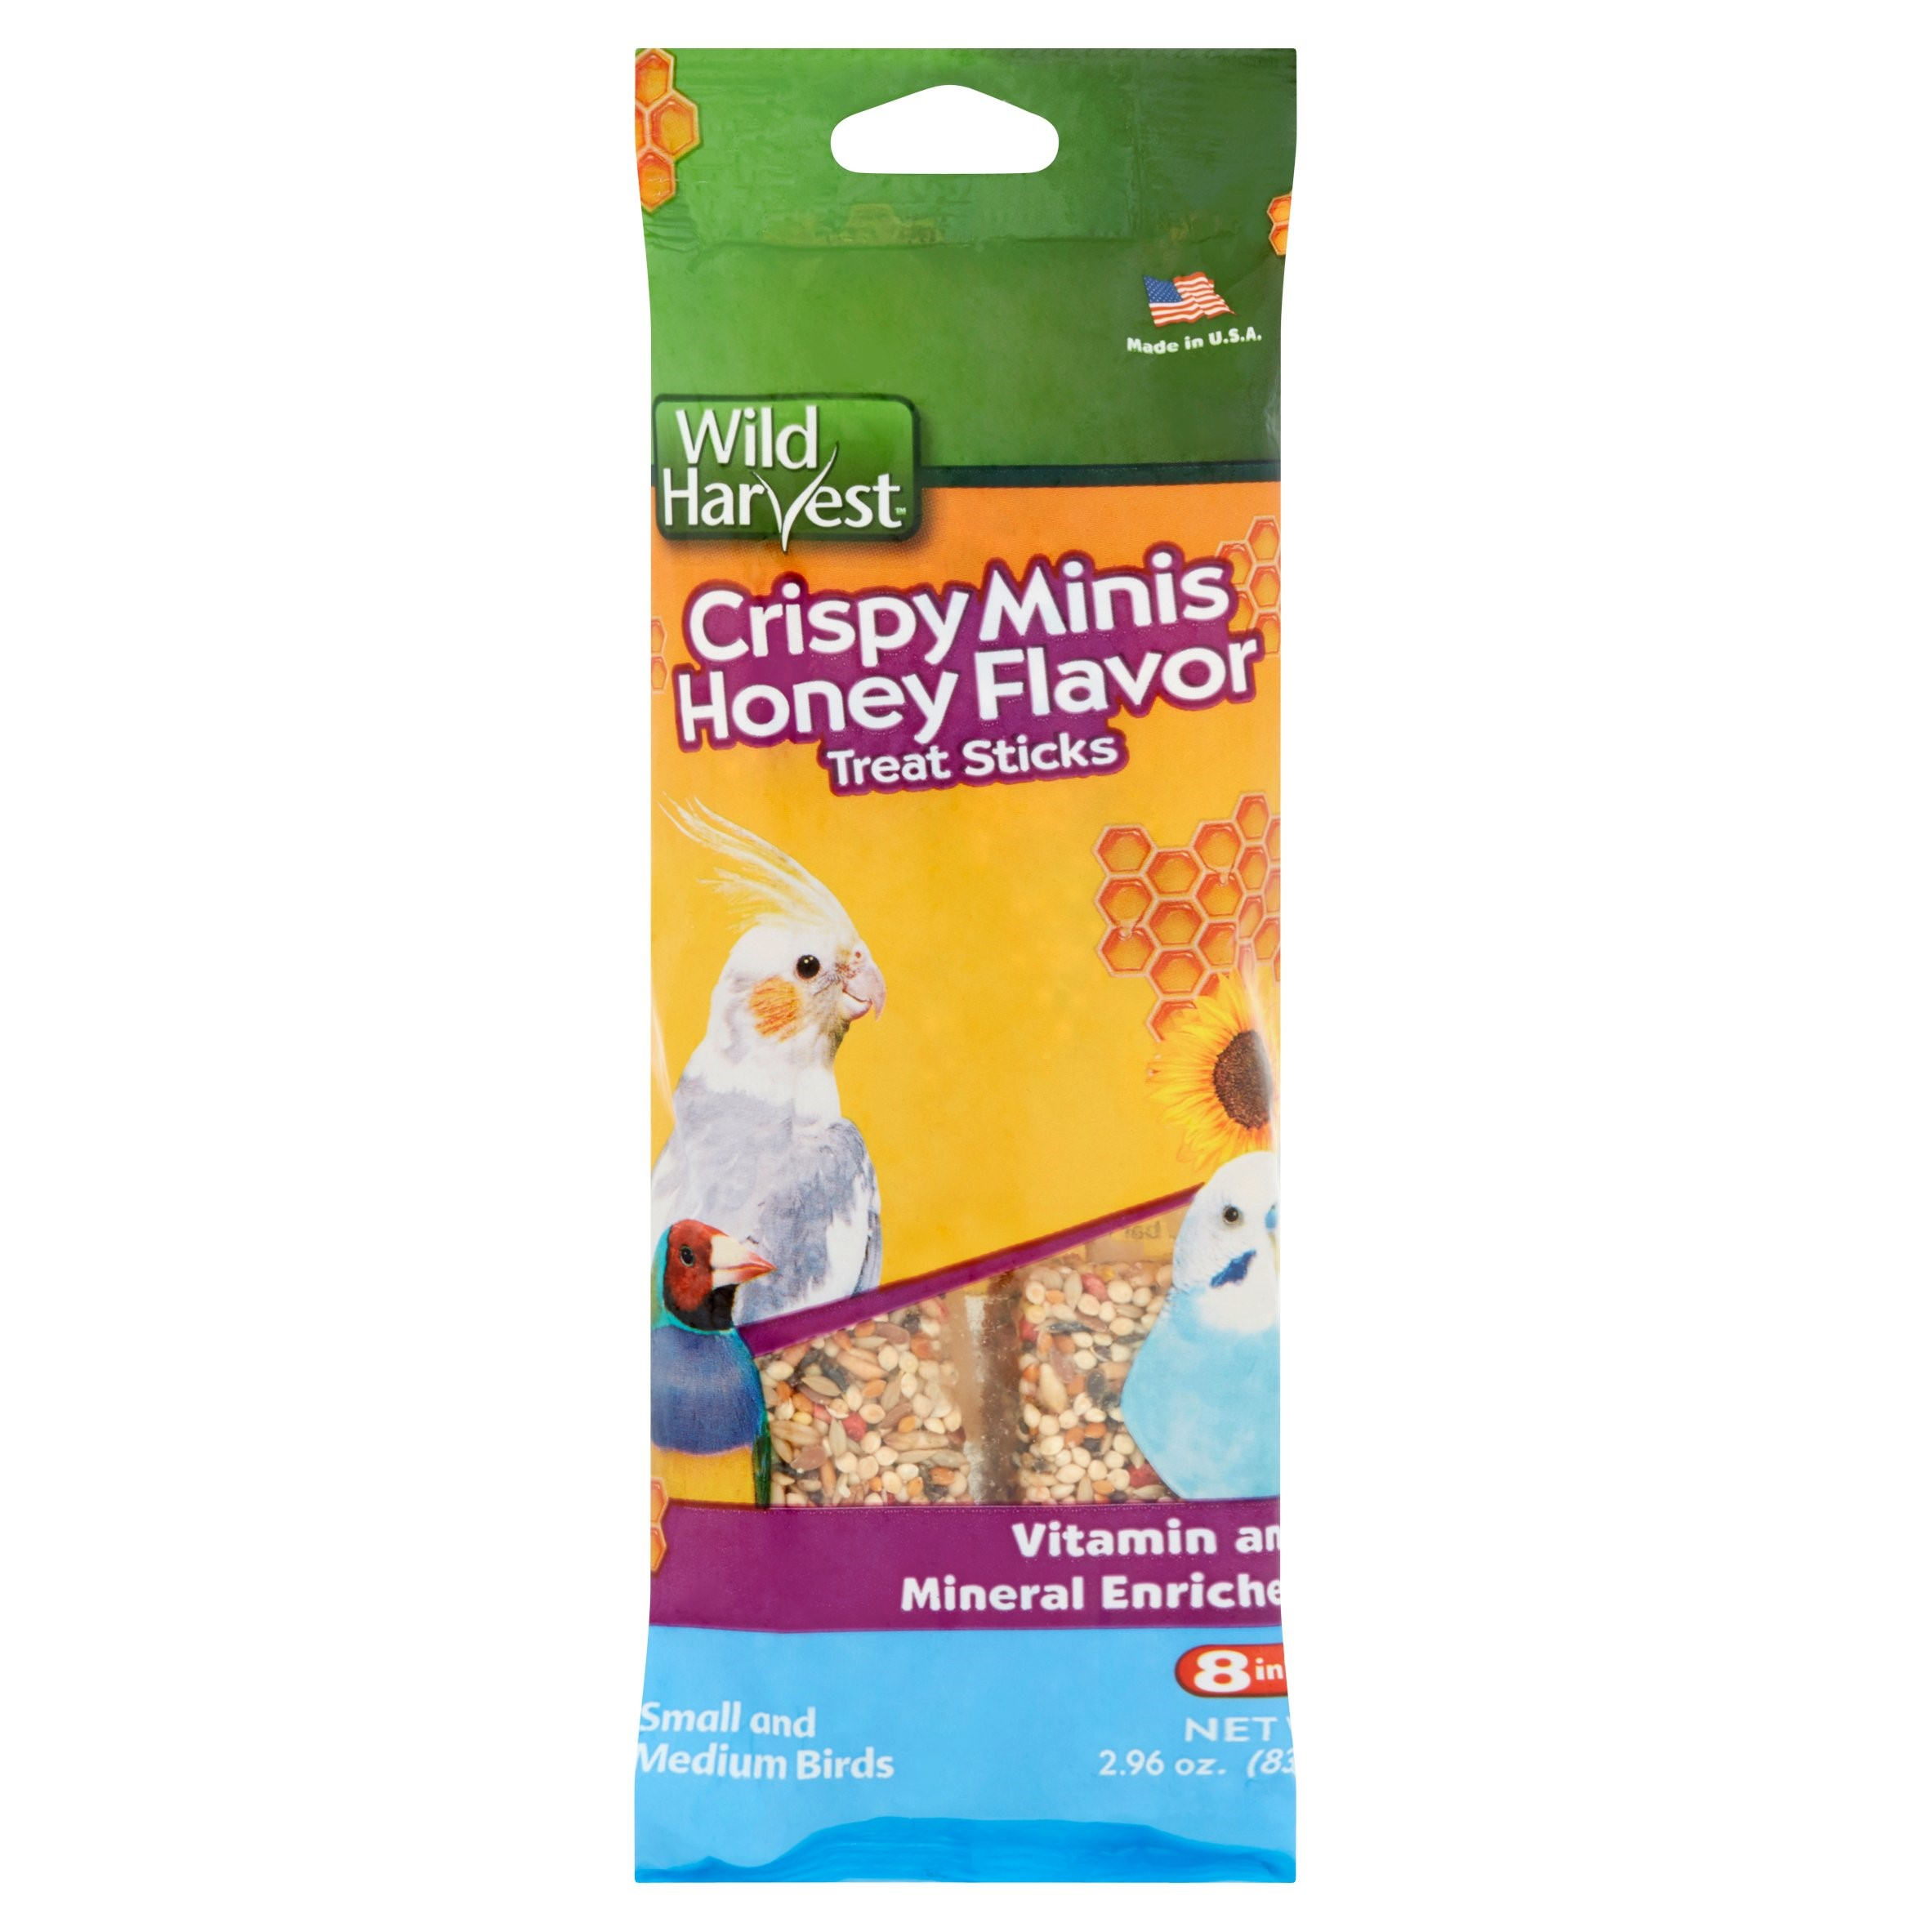 (3 Pack) Wild Harvest Crispy Mini Honey Flavor Treat Sticks, 2.96 oz